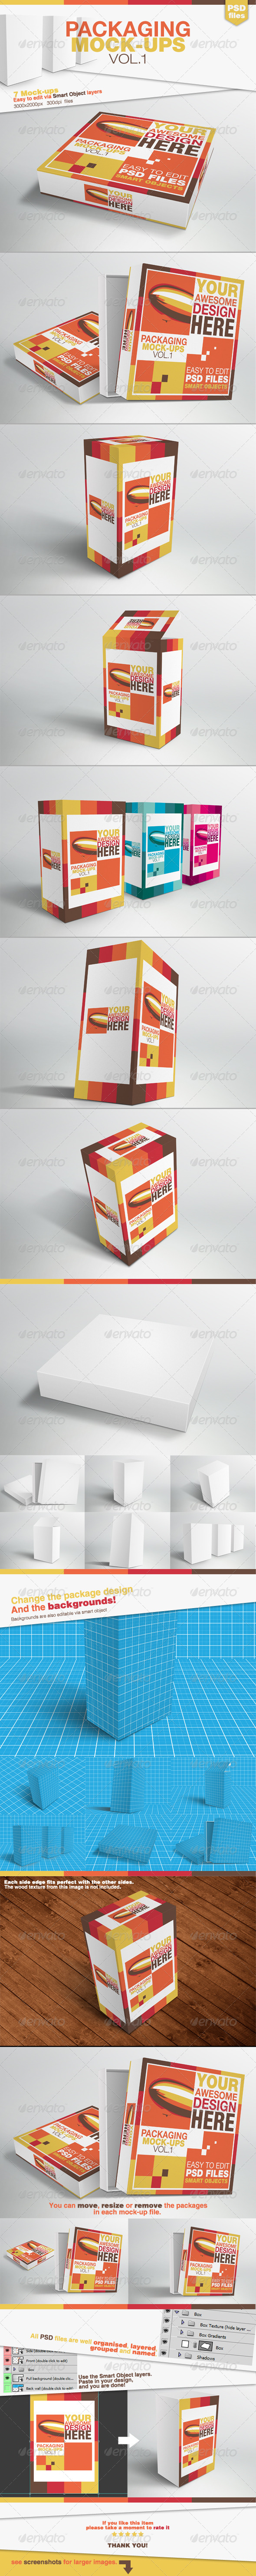 GraphicRiver Packaging Mock-ups Vol.1 6211909